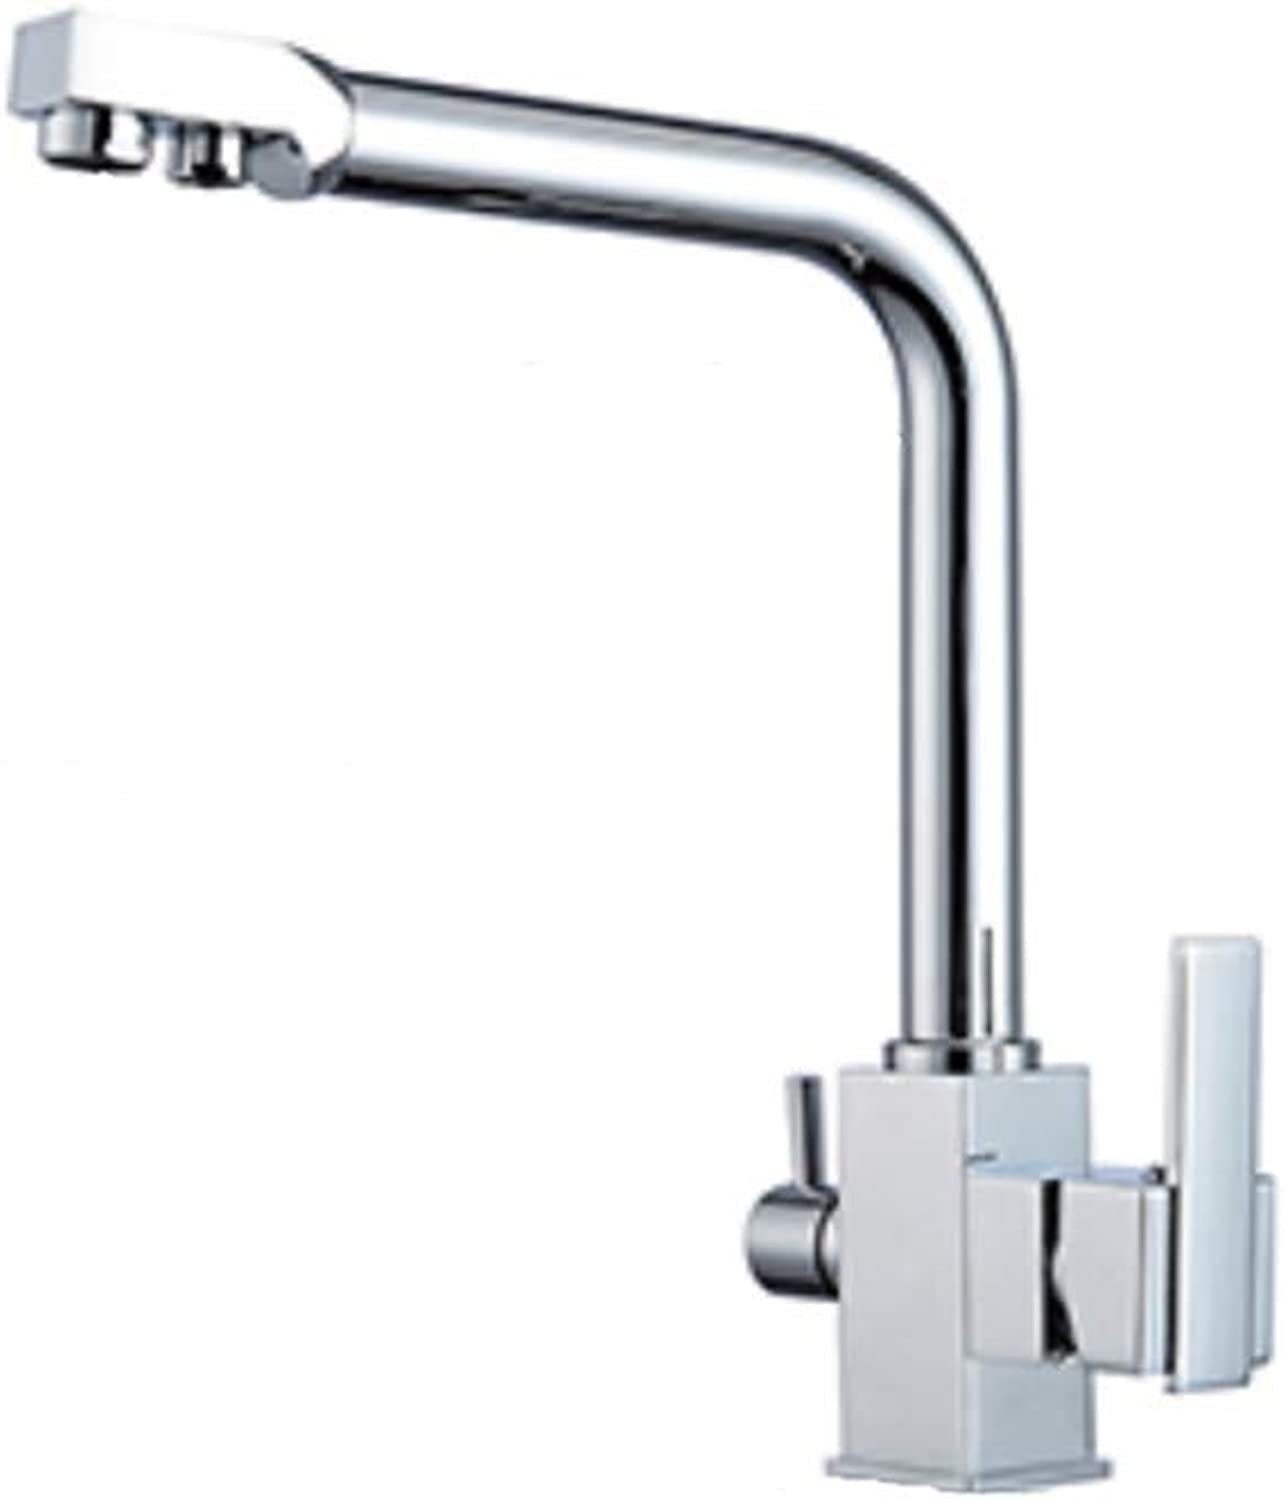 Taps Kitchen Basin Bathroom Washroomsquare Filter Faucets Kitchen 3 Way Water Tap Dual Lever Kitchen Taps Chrome Deck Mounted Water Purifier Faucet